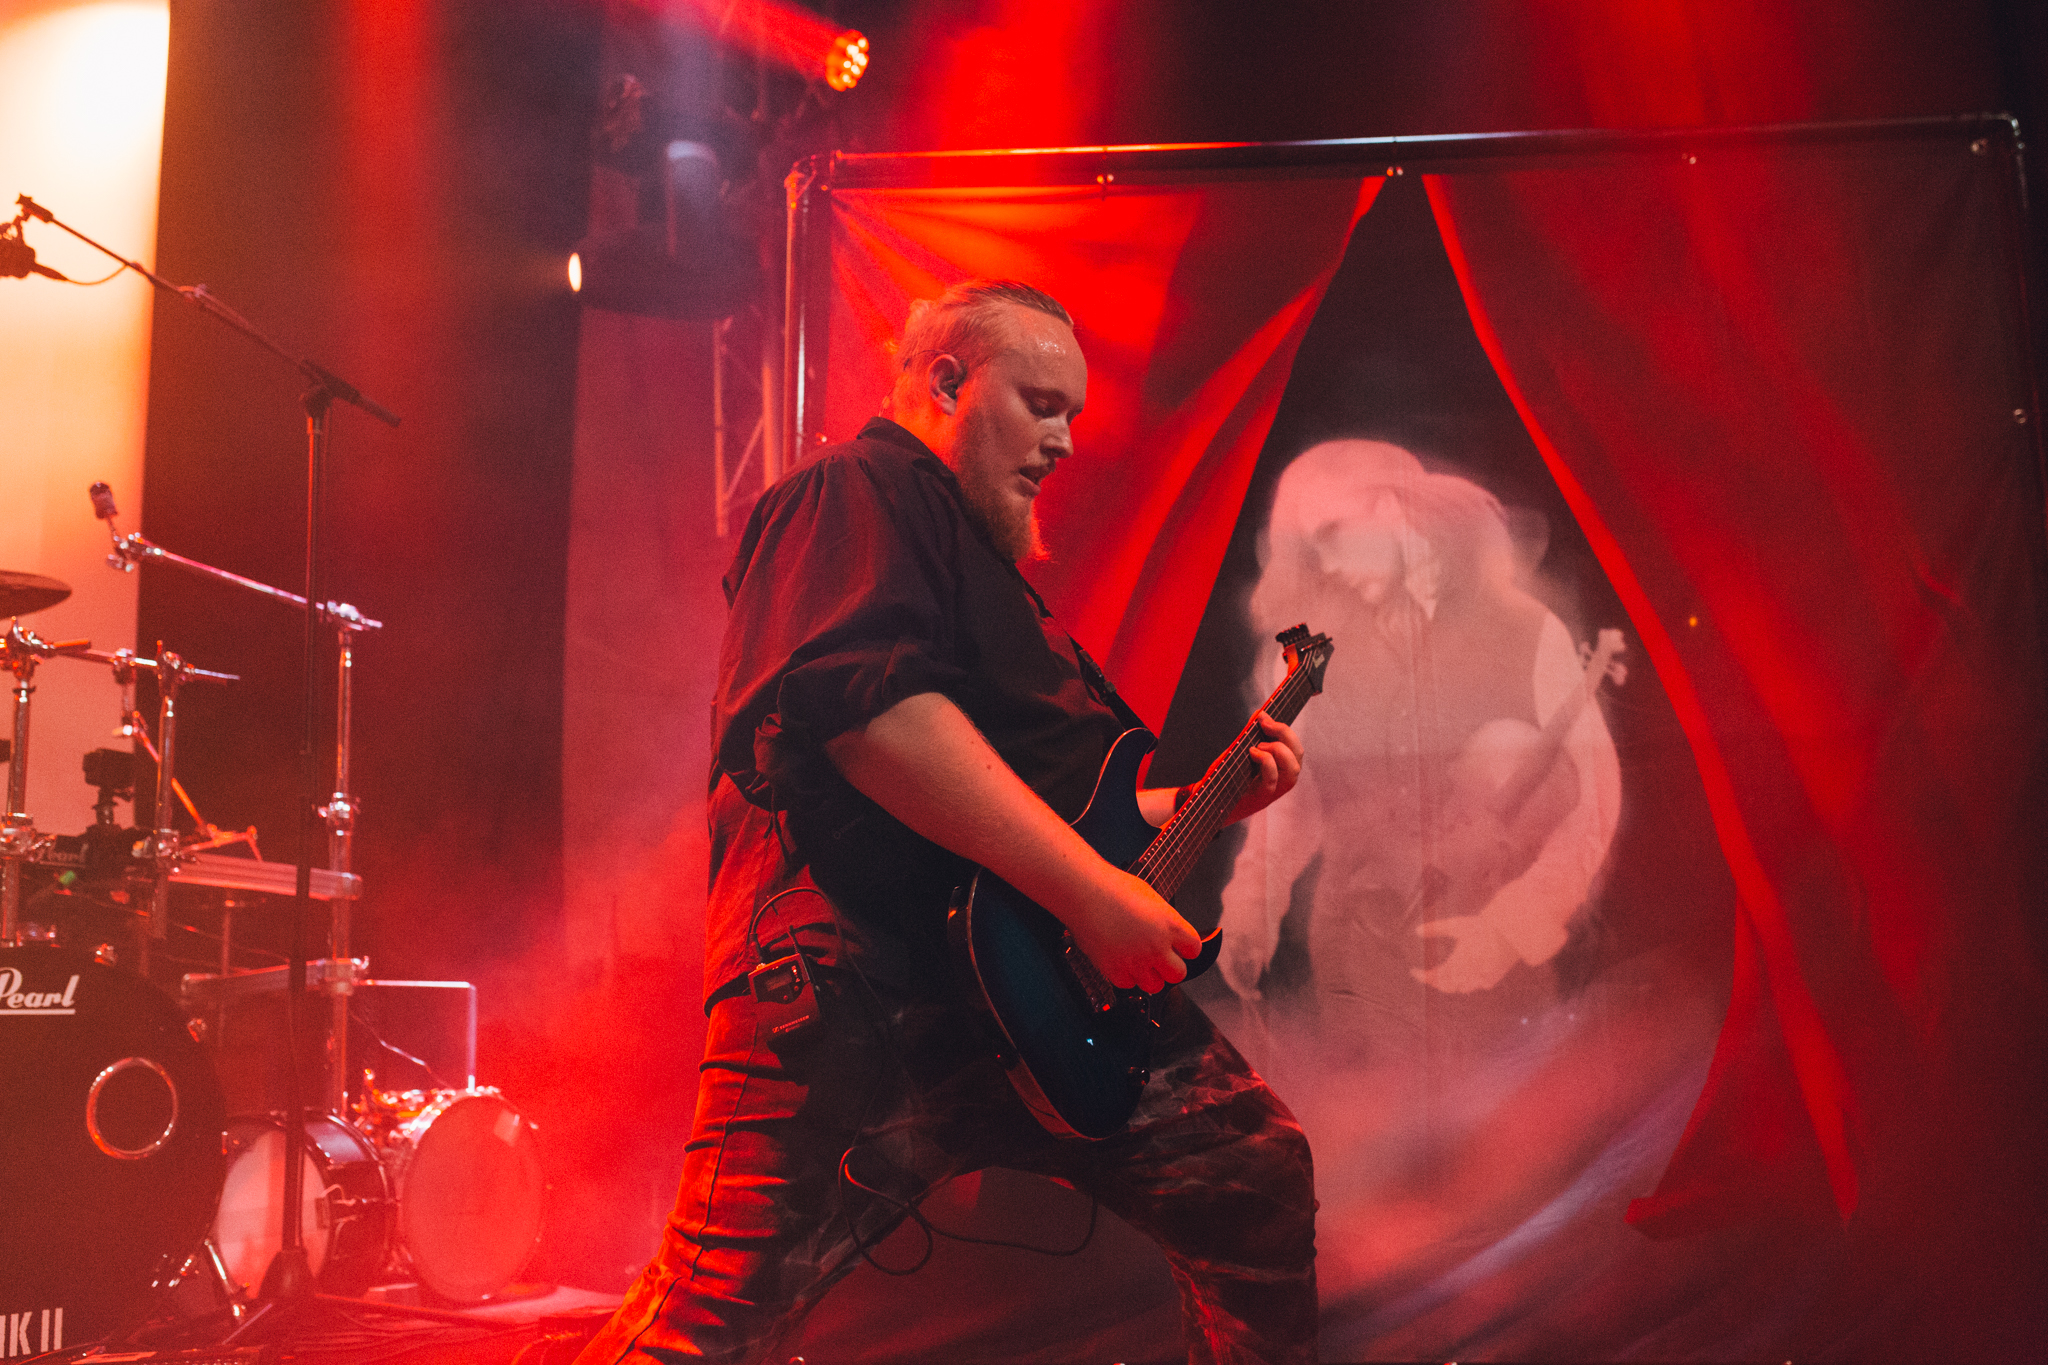 Ethereal Kingdoms by Mathilde Maria Photography live at Gimle Finntroll Vanir Sylvatica 21